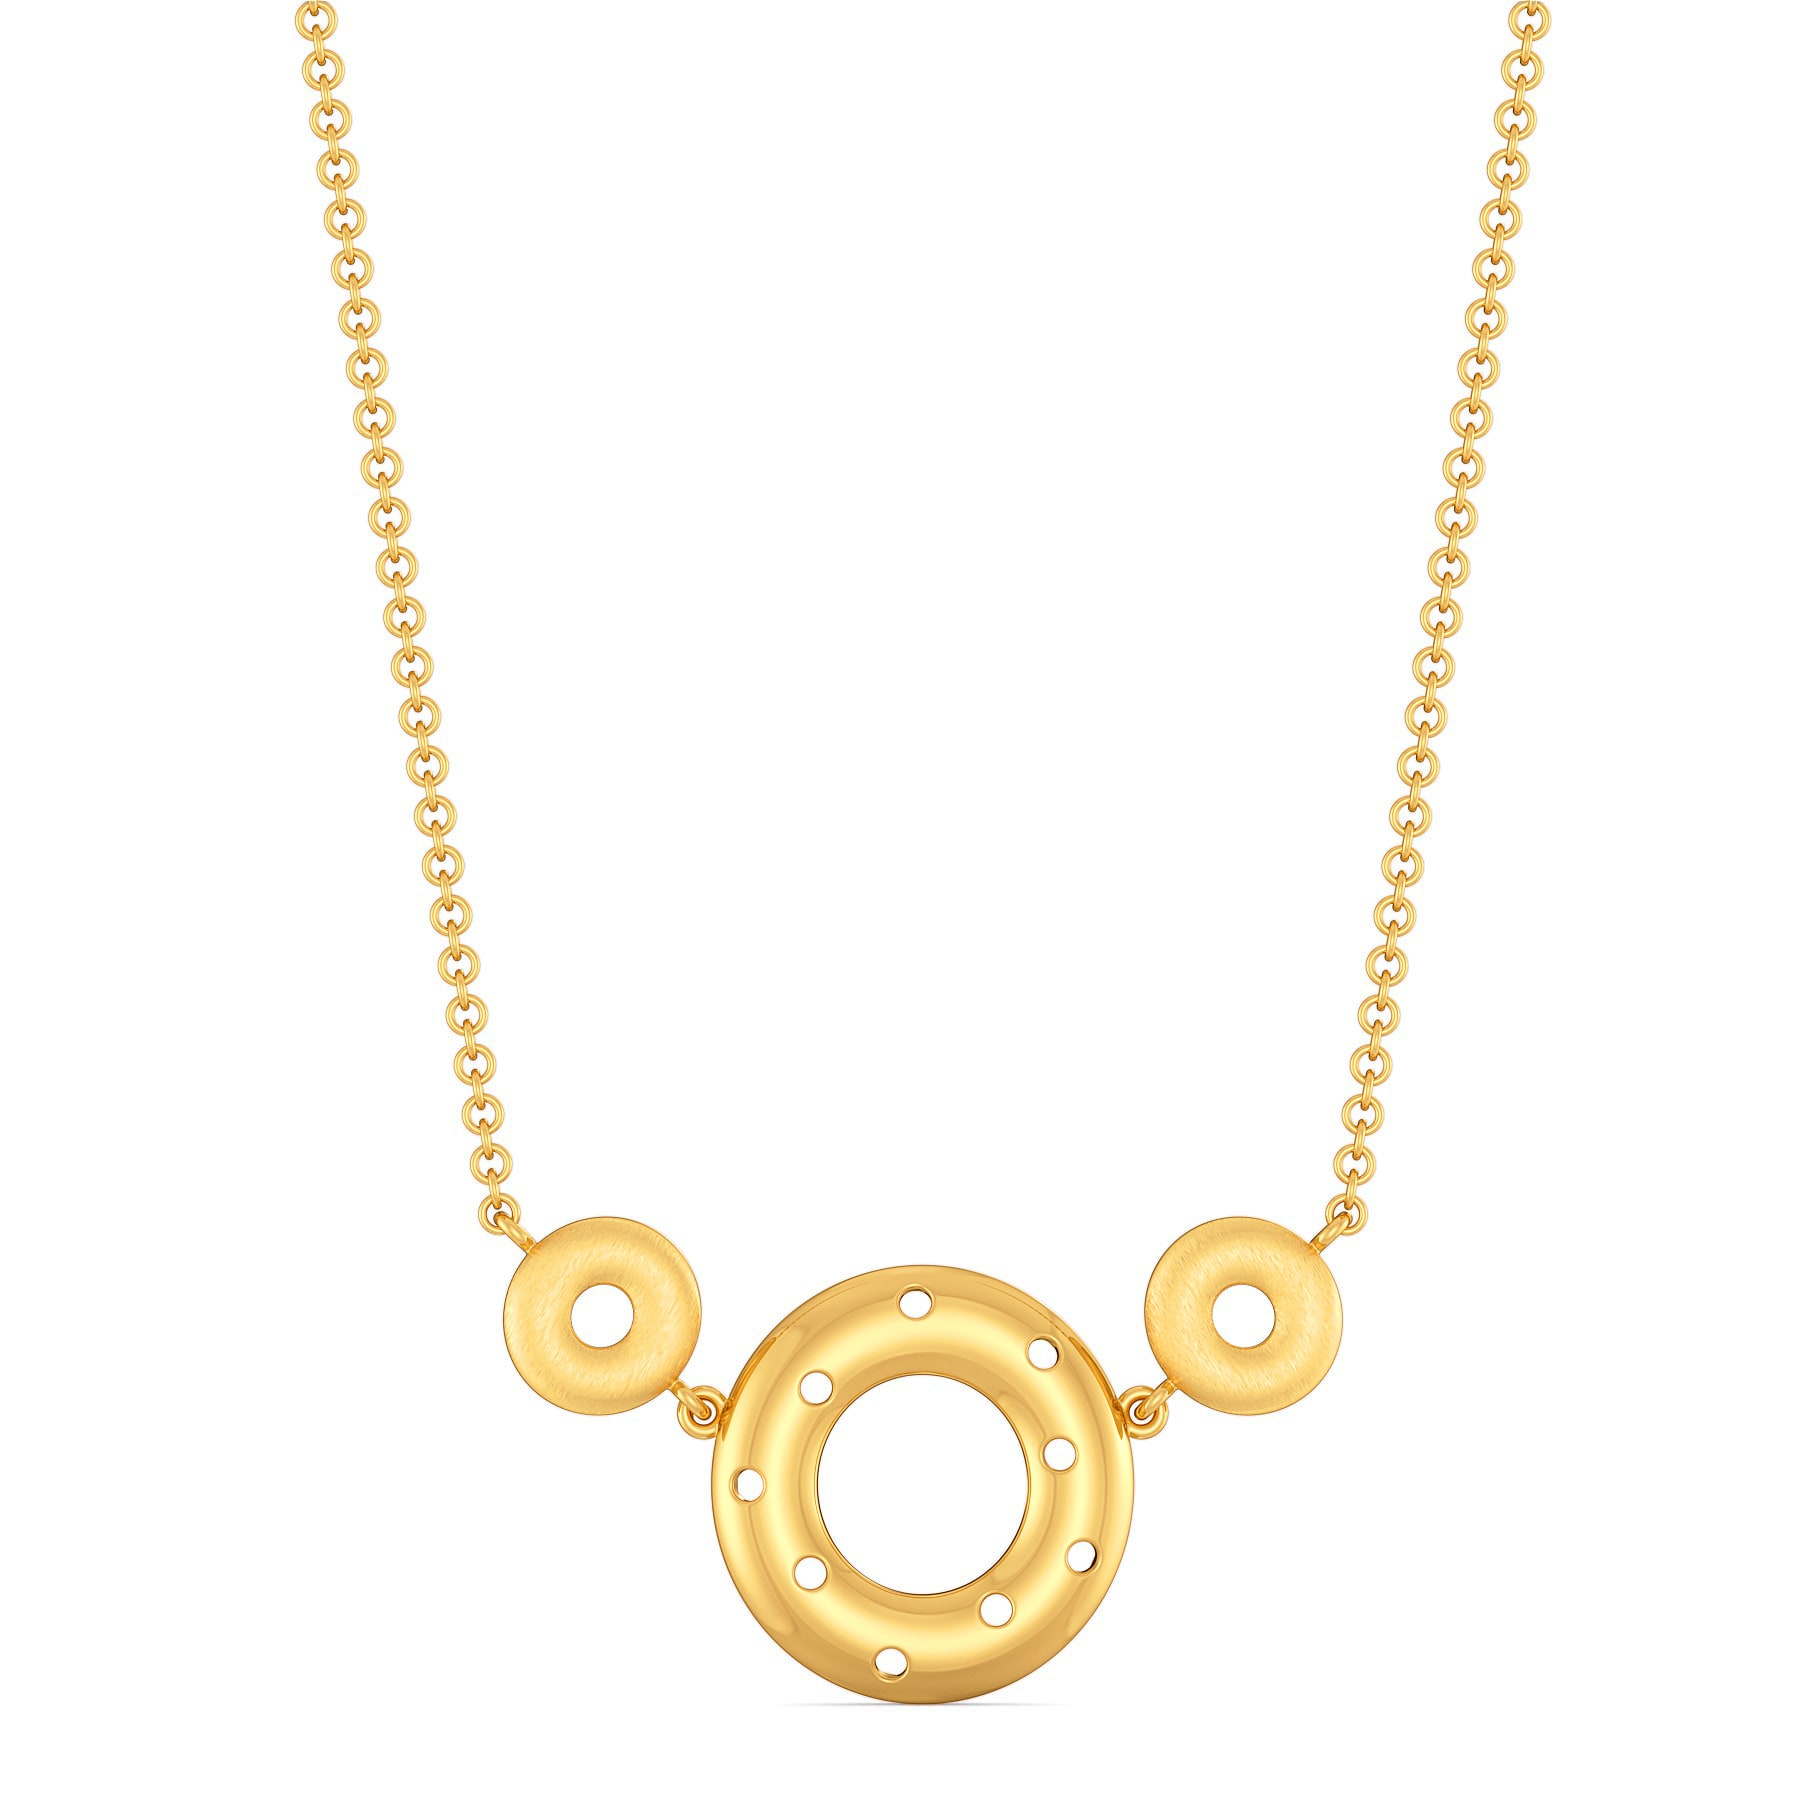 Feisty Reps Gold Necklaces